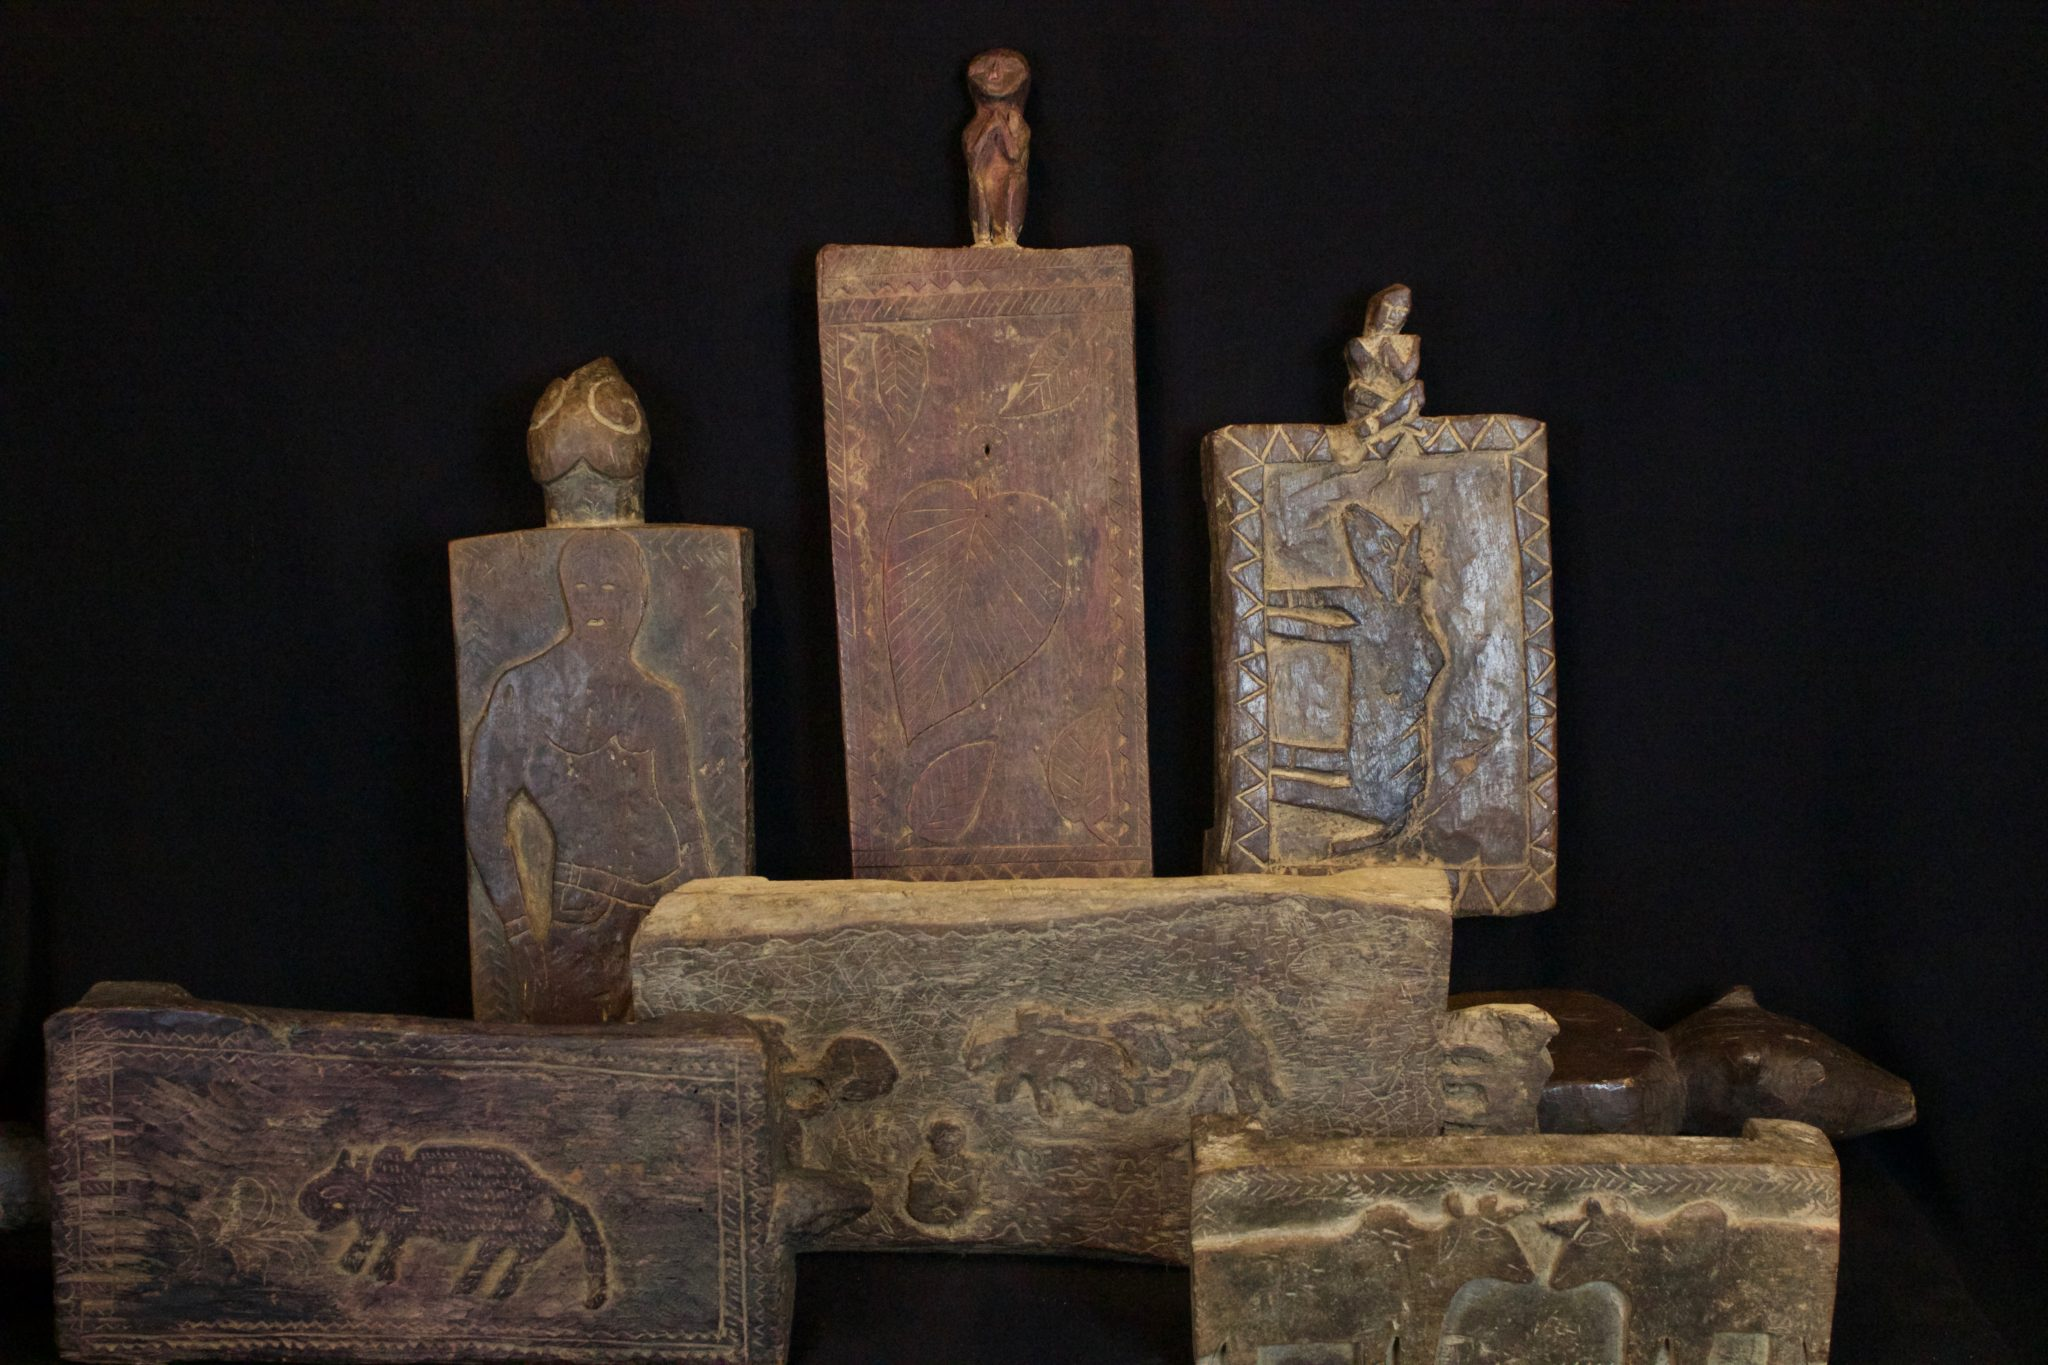 "Hand Carved Wooden Ceremonial Shaman Stools, from the late 19th to mid 20th century, Wood, Used for meditation and for ritual ceremonies. 12"" to 14"", $185. to $320."